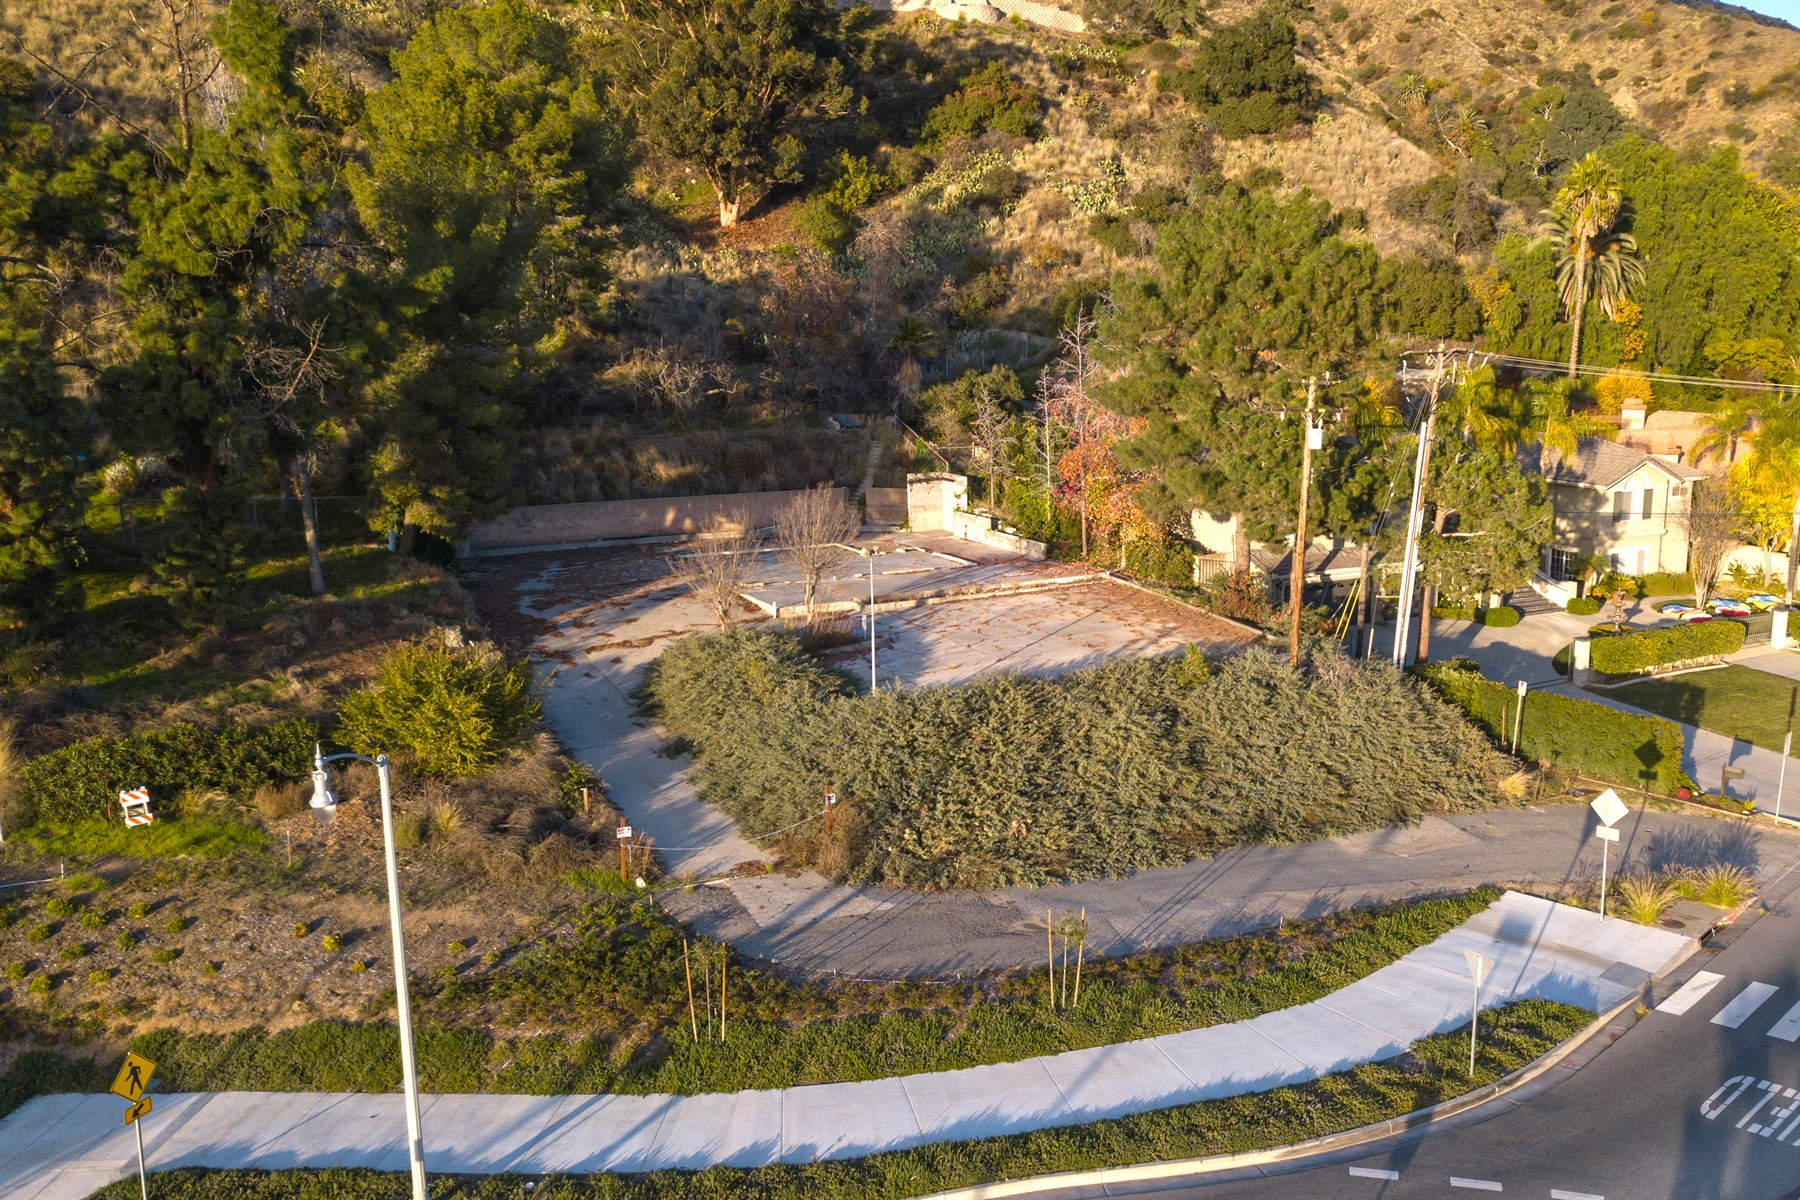 Land for Active at 18453 E. Sierra Madre Avenue, Azusa, CA 91702 18453 E. Sierra Madre Avenue Azusa, California 91702 United States